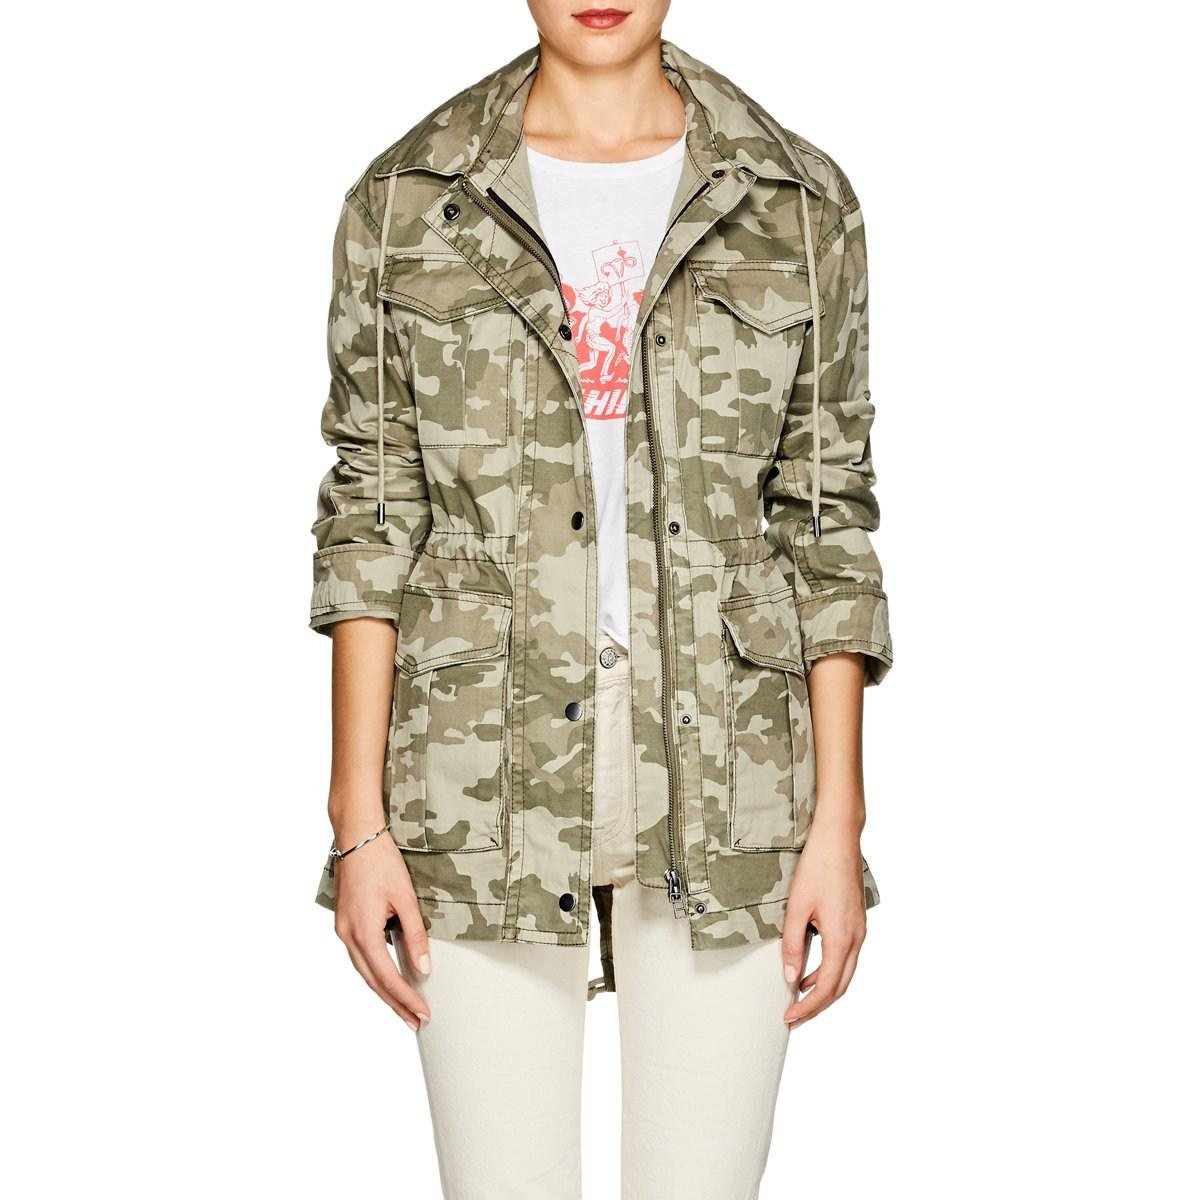 07e50cb1876a3 ATM Camouflage Cotton Field Jacket in Green - Lyst